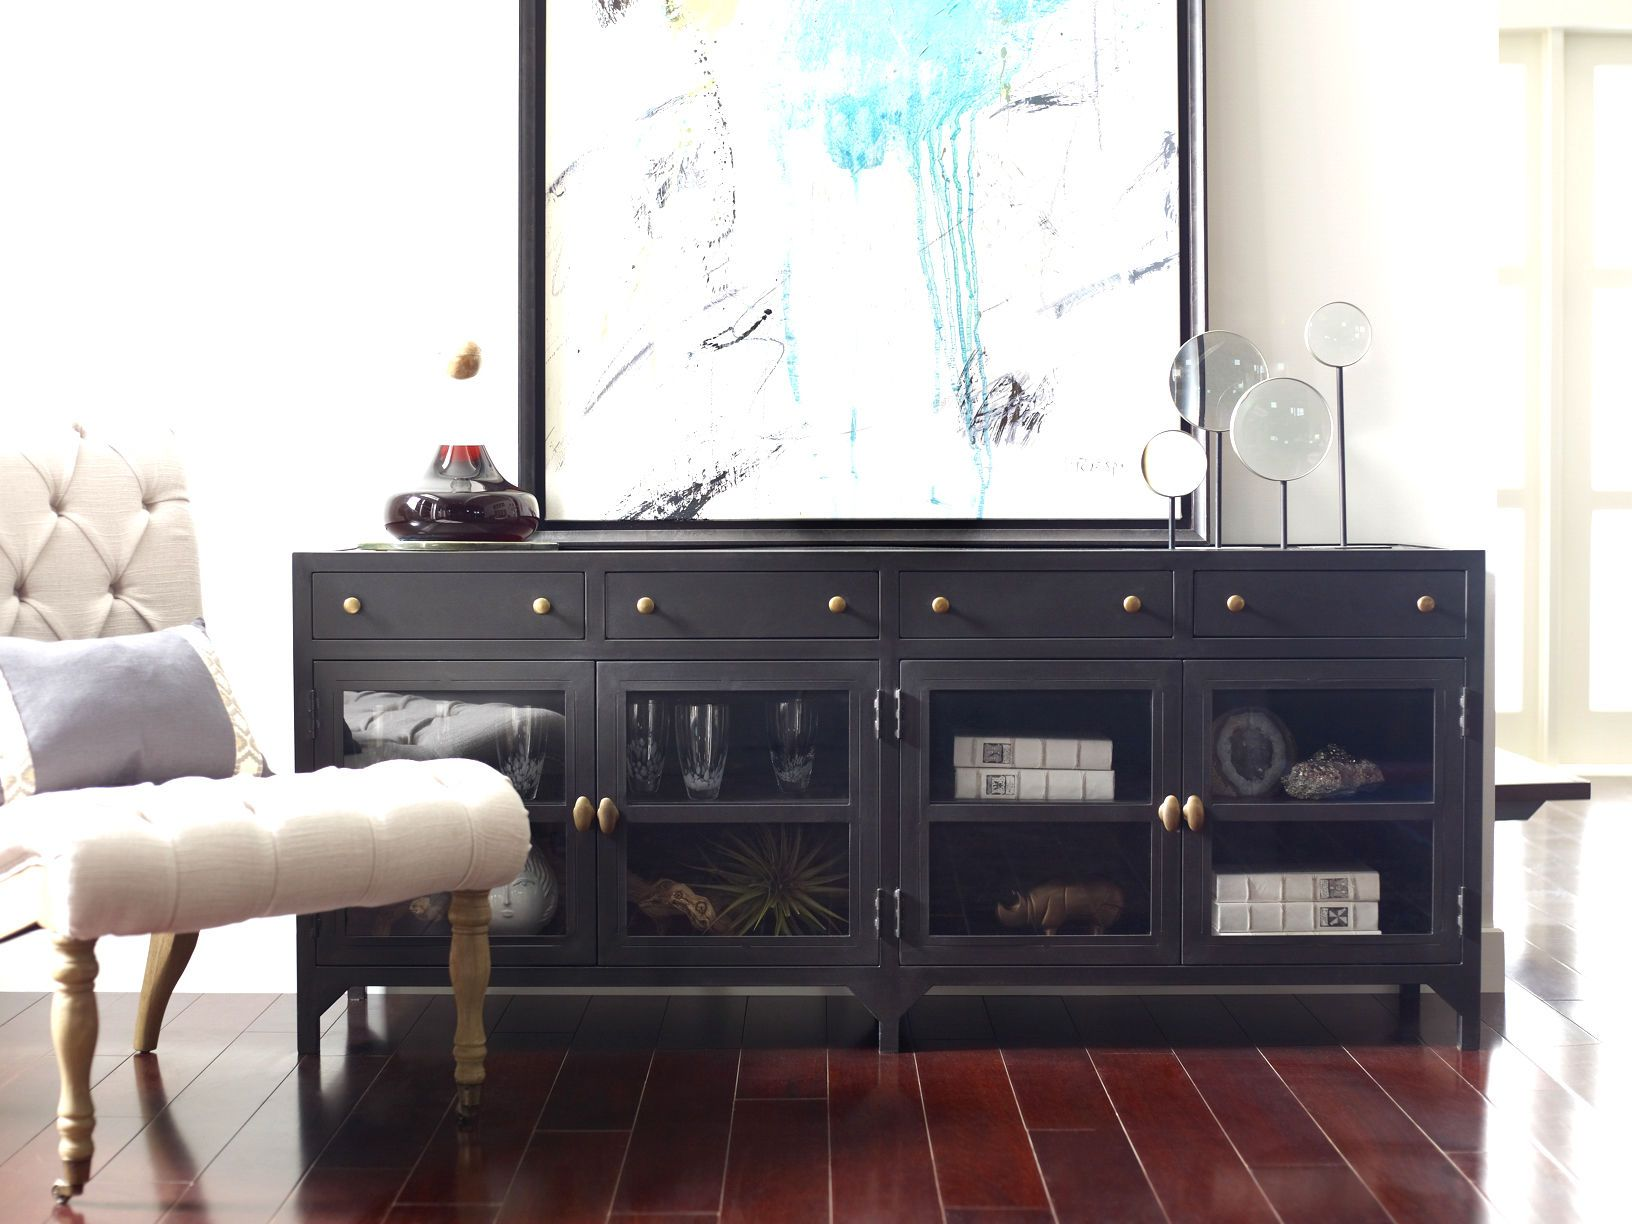 Shop Our Shadow Box Industrial Black Metal Media Console On Sale. This Media  Cabinet Feature Glass Doors, Brass Knobs And Drawers Part 74